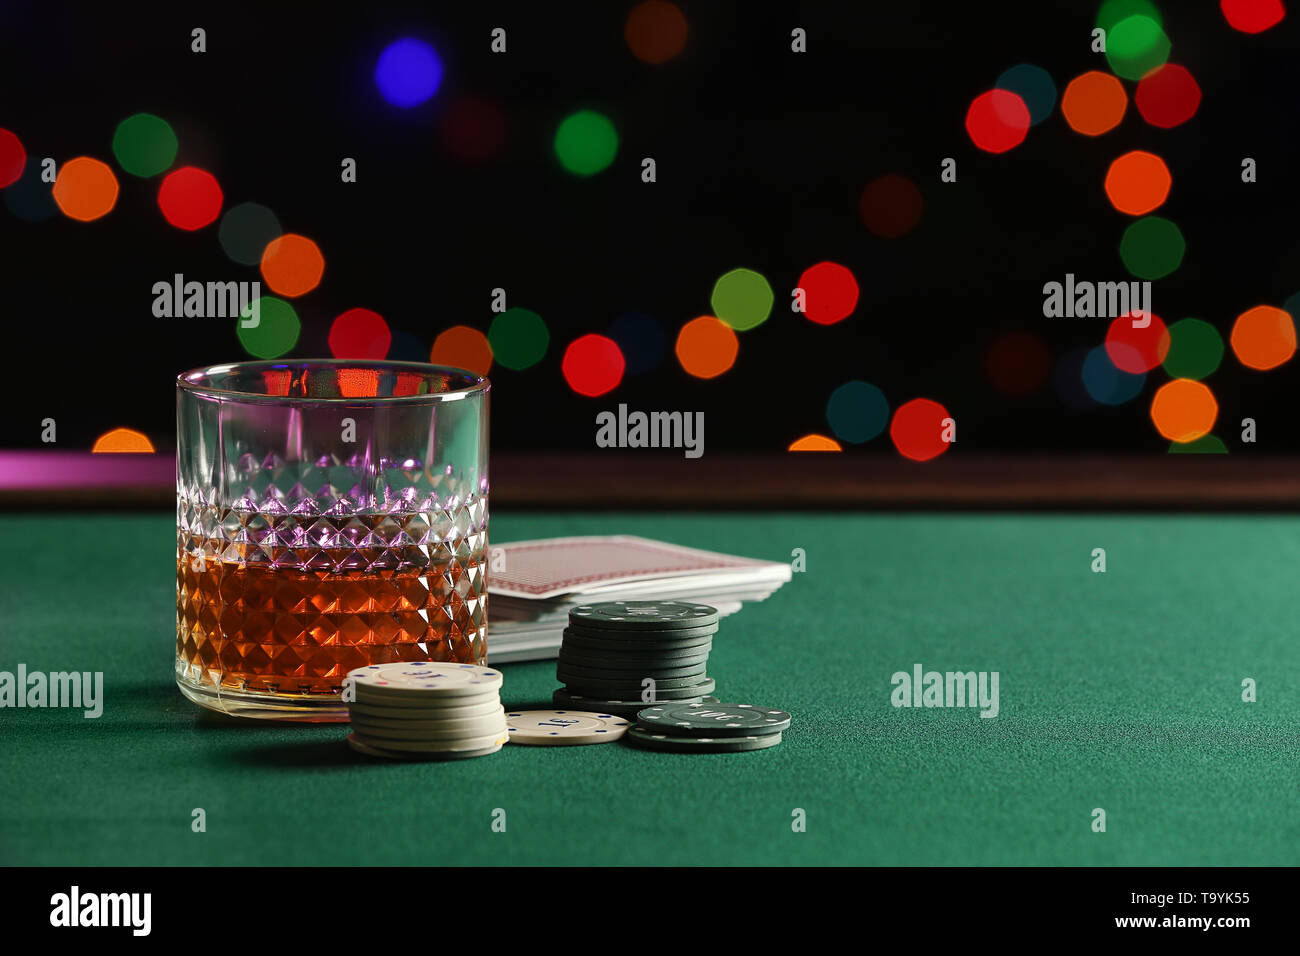 Chips, glass of whiskey and cards on table in casino - Stock Image